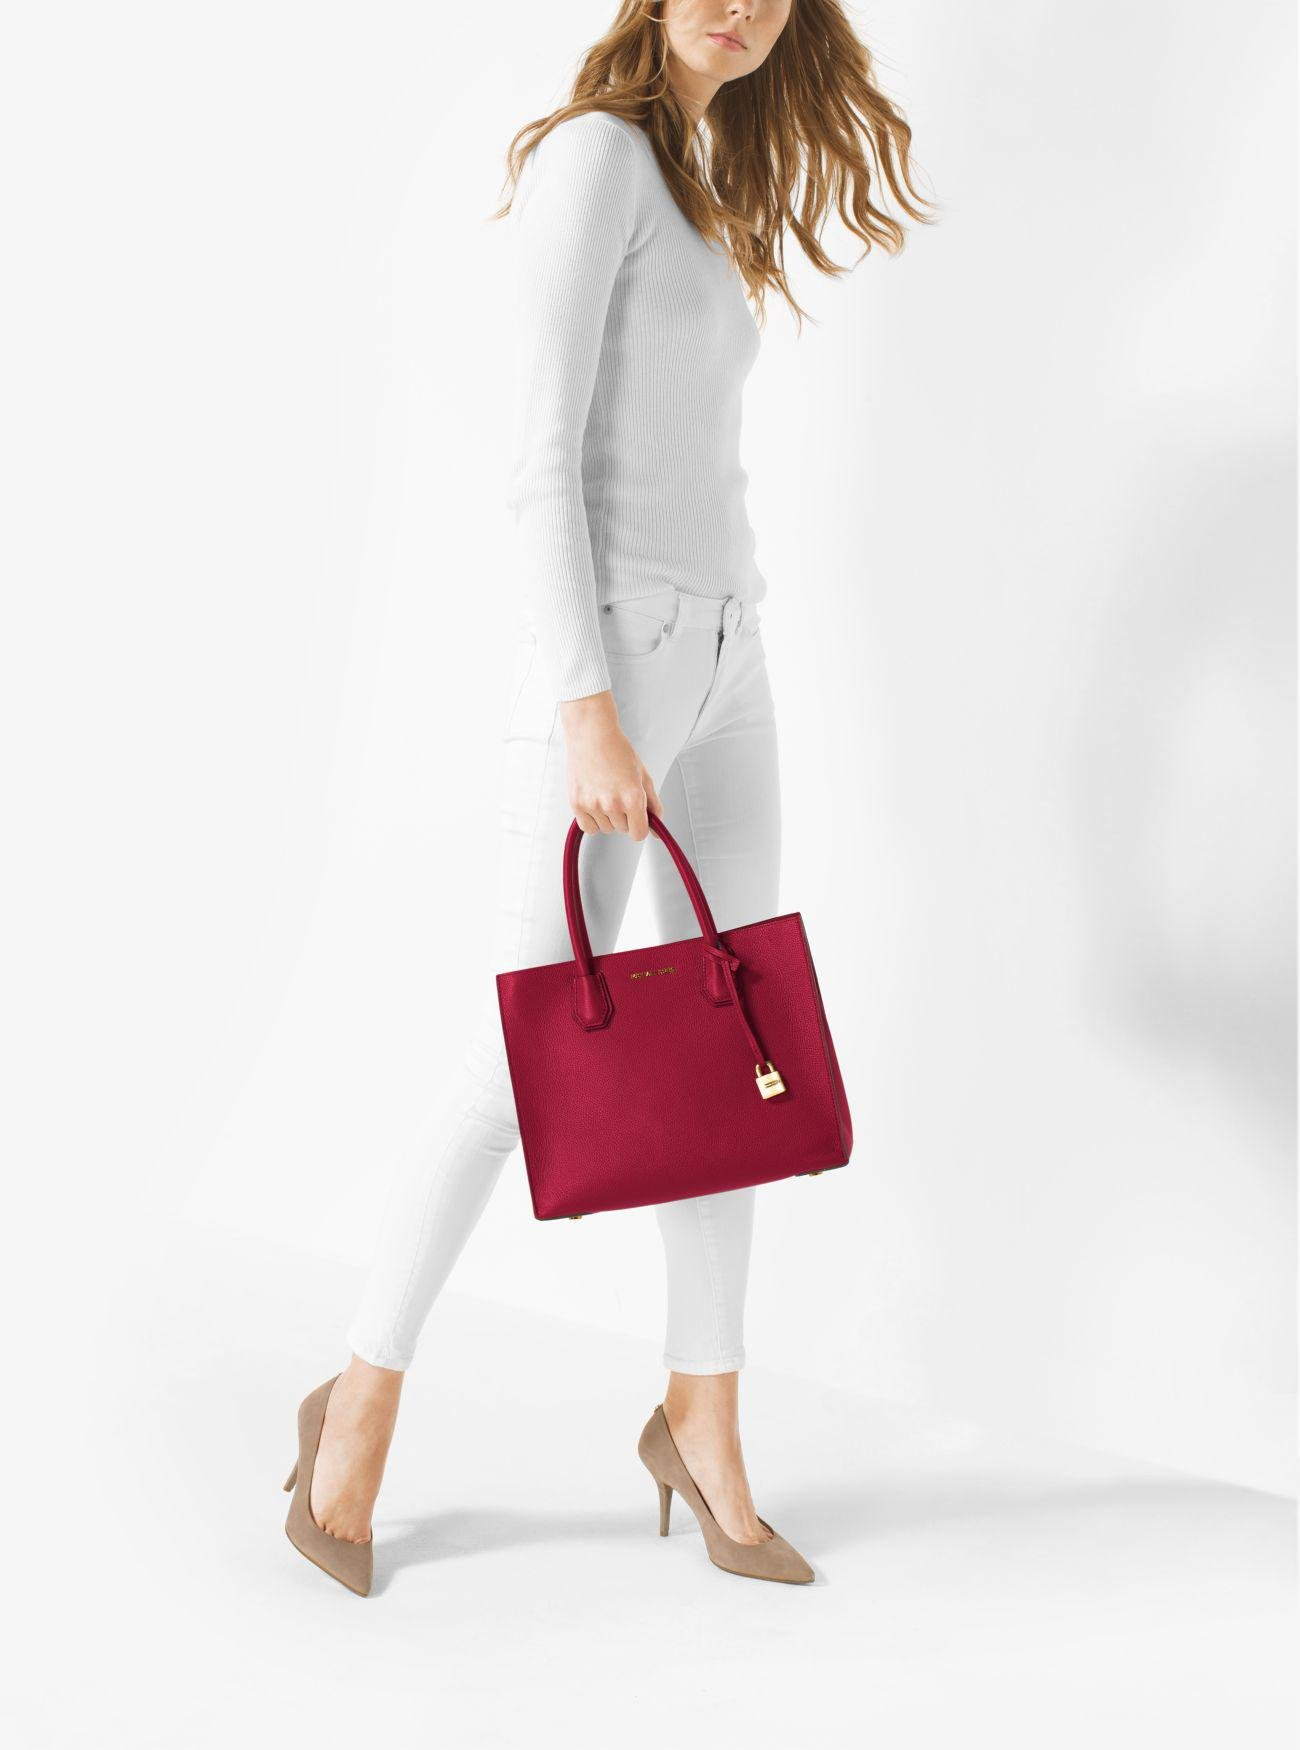 2ce3ed20acee Lyst - Michael Kors Mercer Large Leather Tote in Red